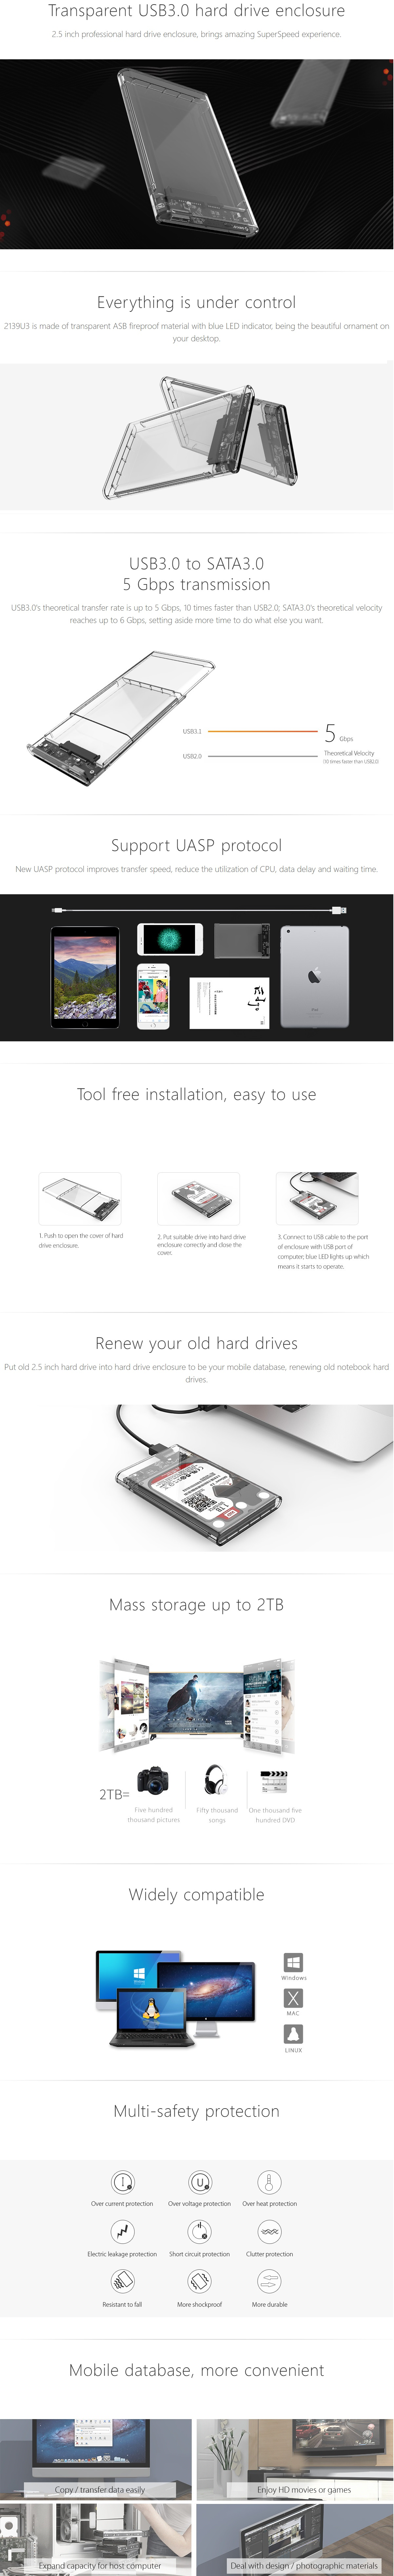 """A large marketing image providing additional information about the product ORICO USB3.0 2.5"""" External HDD Enclosure Clear - Additional alt info not provided"""